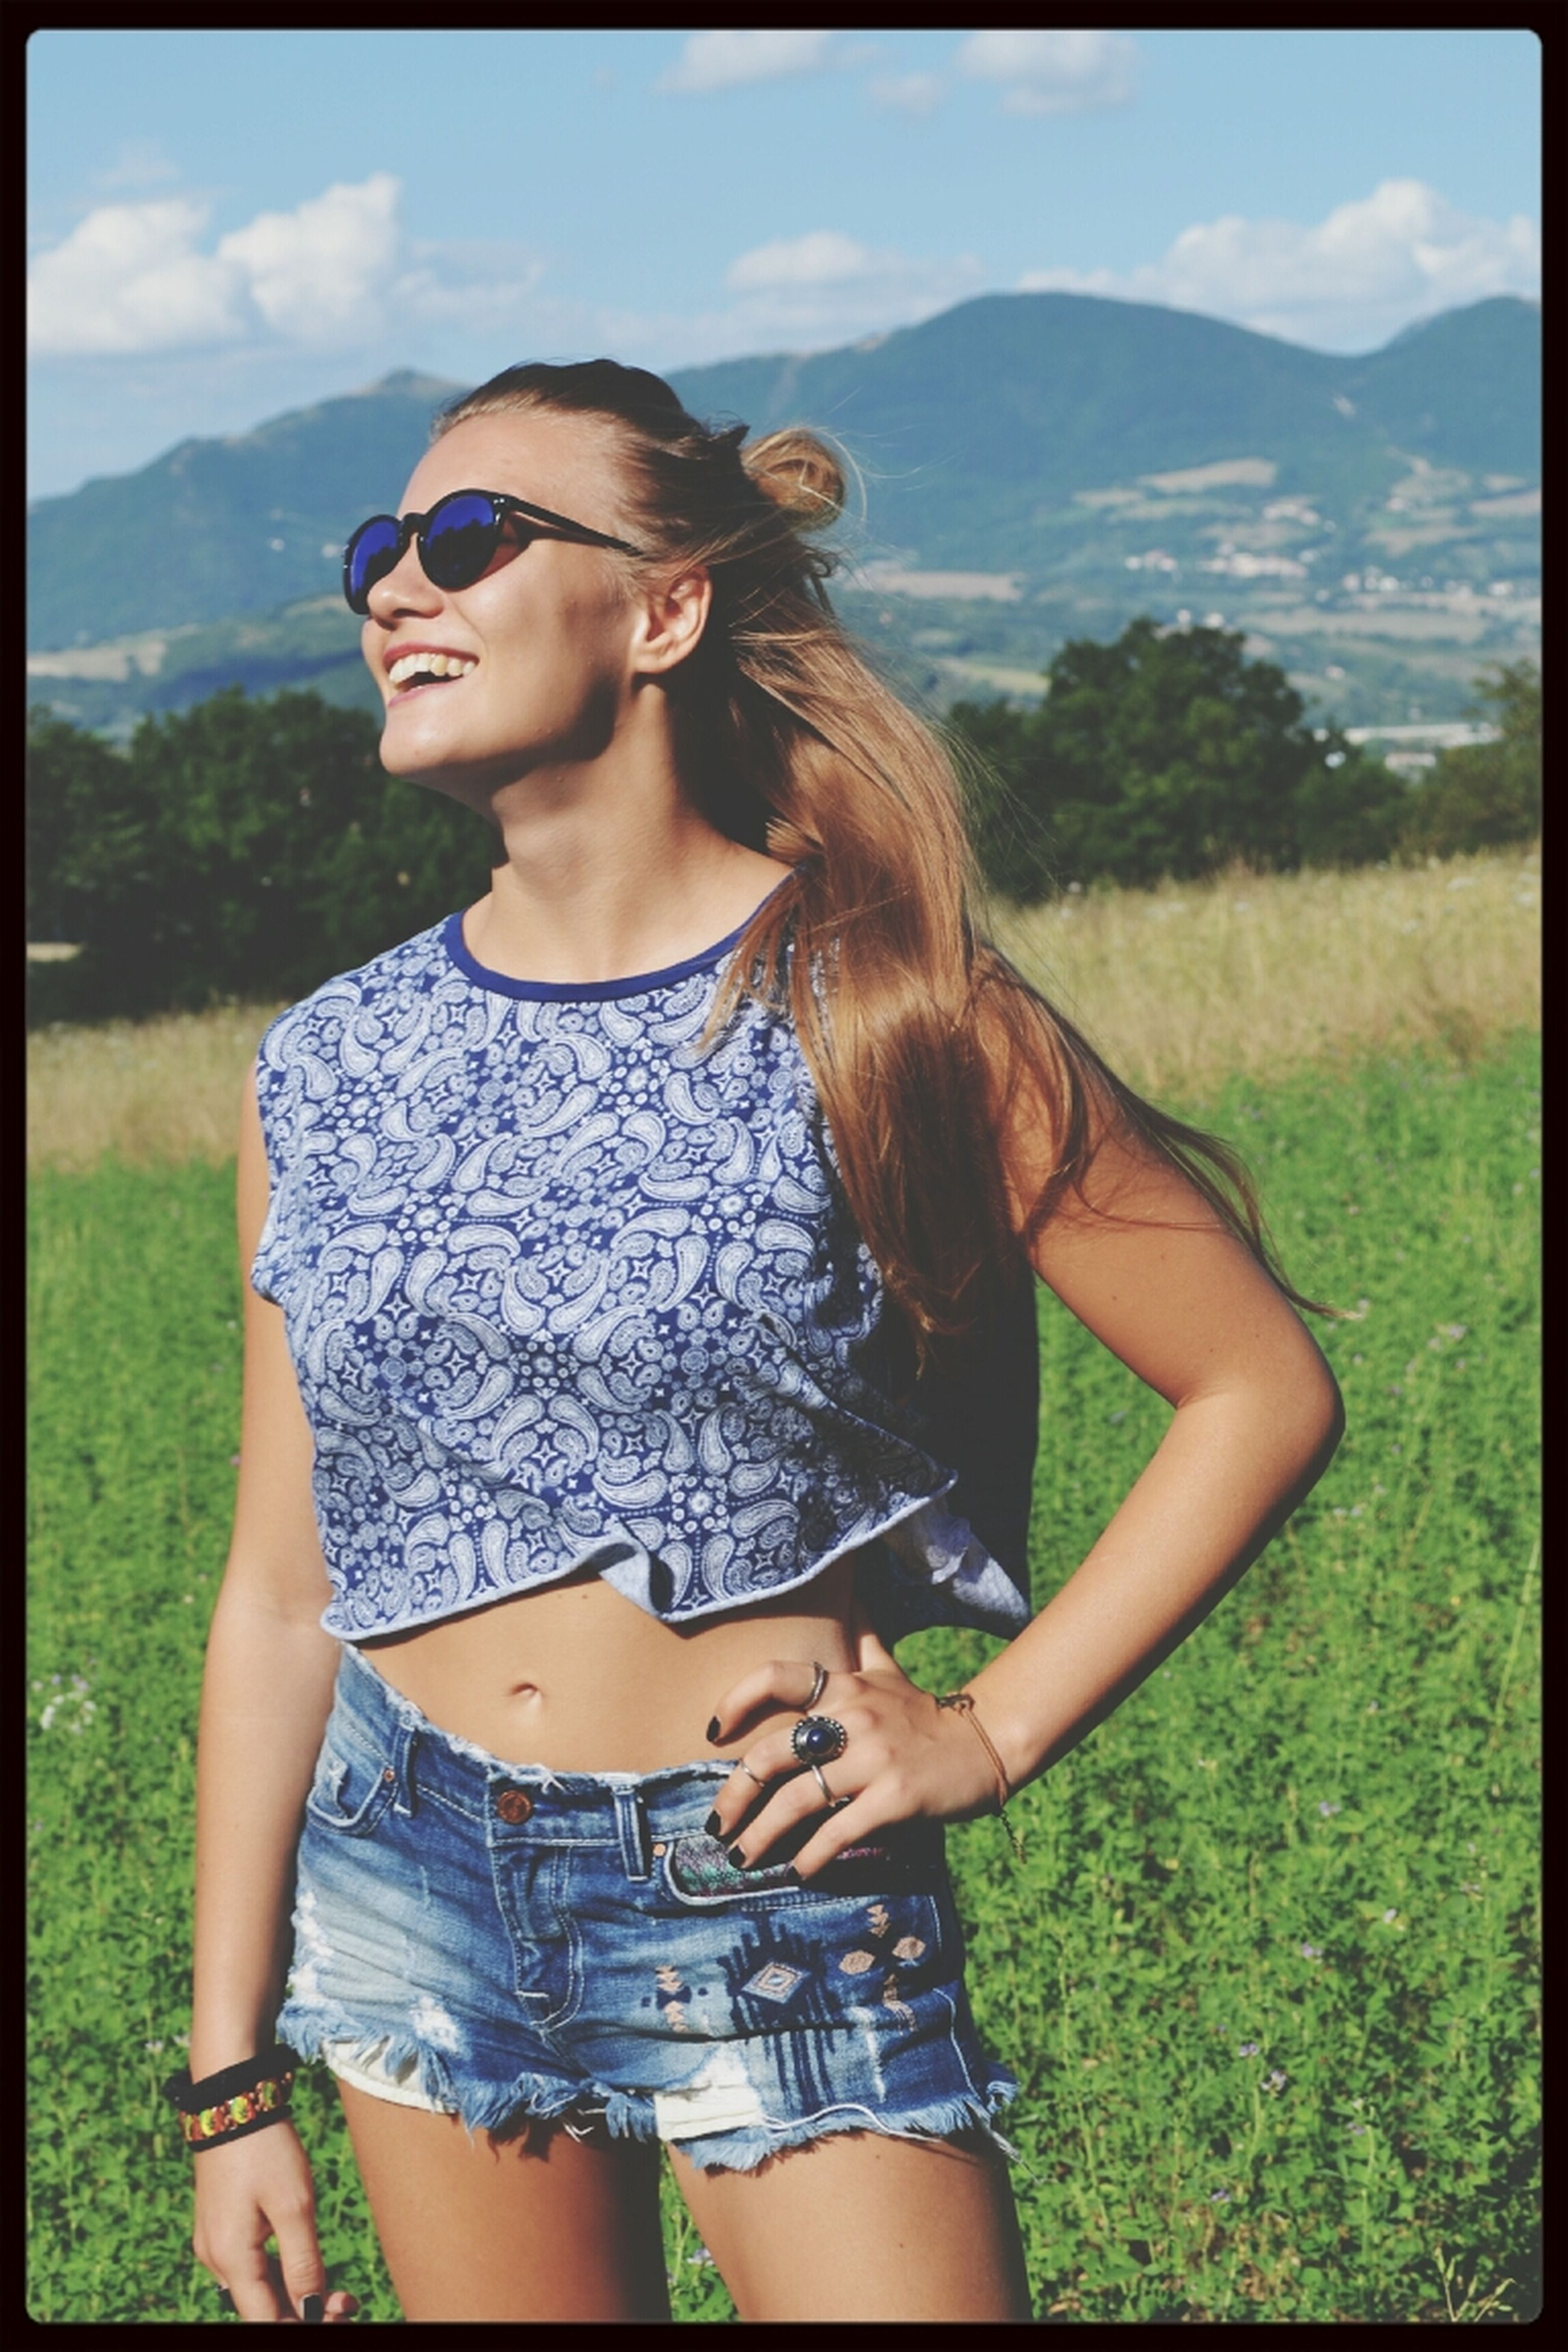 young adult, person, transfer print, young women, lifestyles, grass, looking at camera, sky, portrait, leisure activity, mountain, casual clothing, auto post production filter, field, smiling, front view, sunglasses